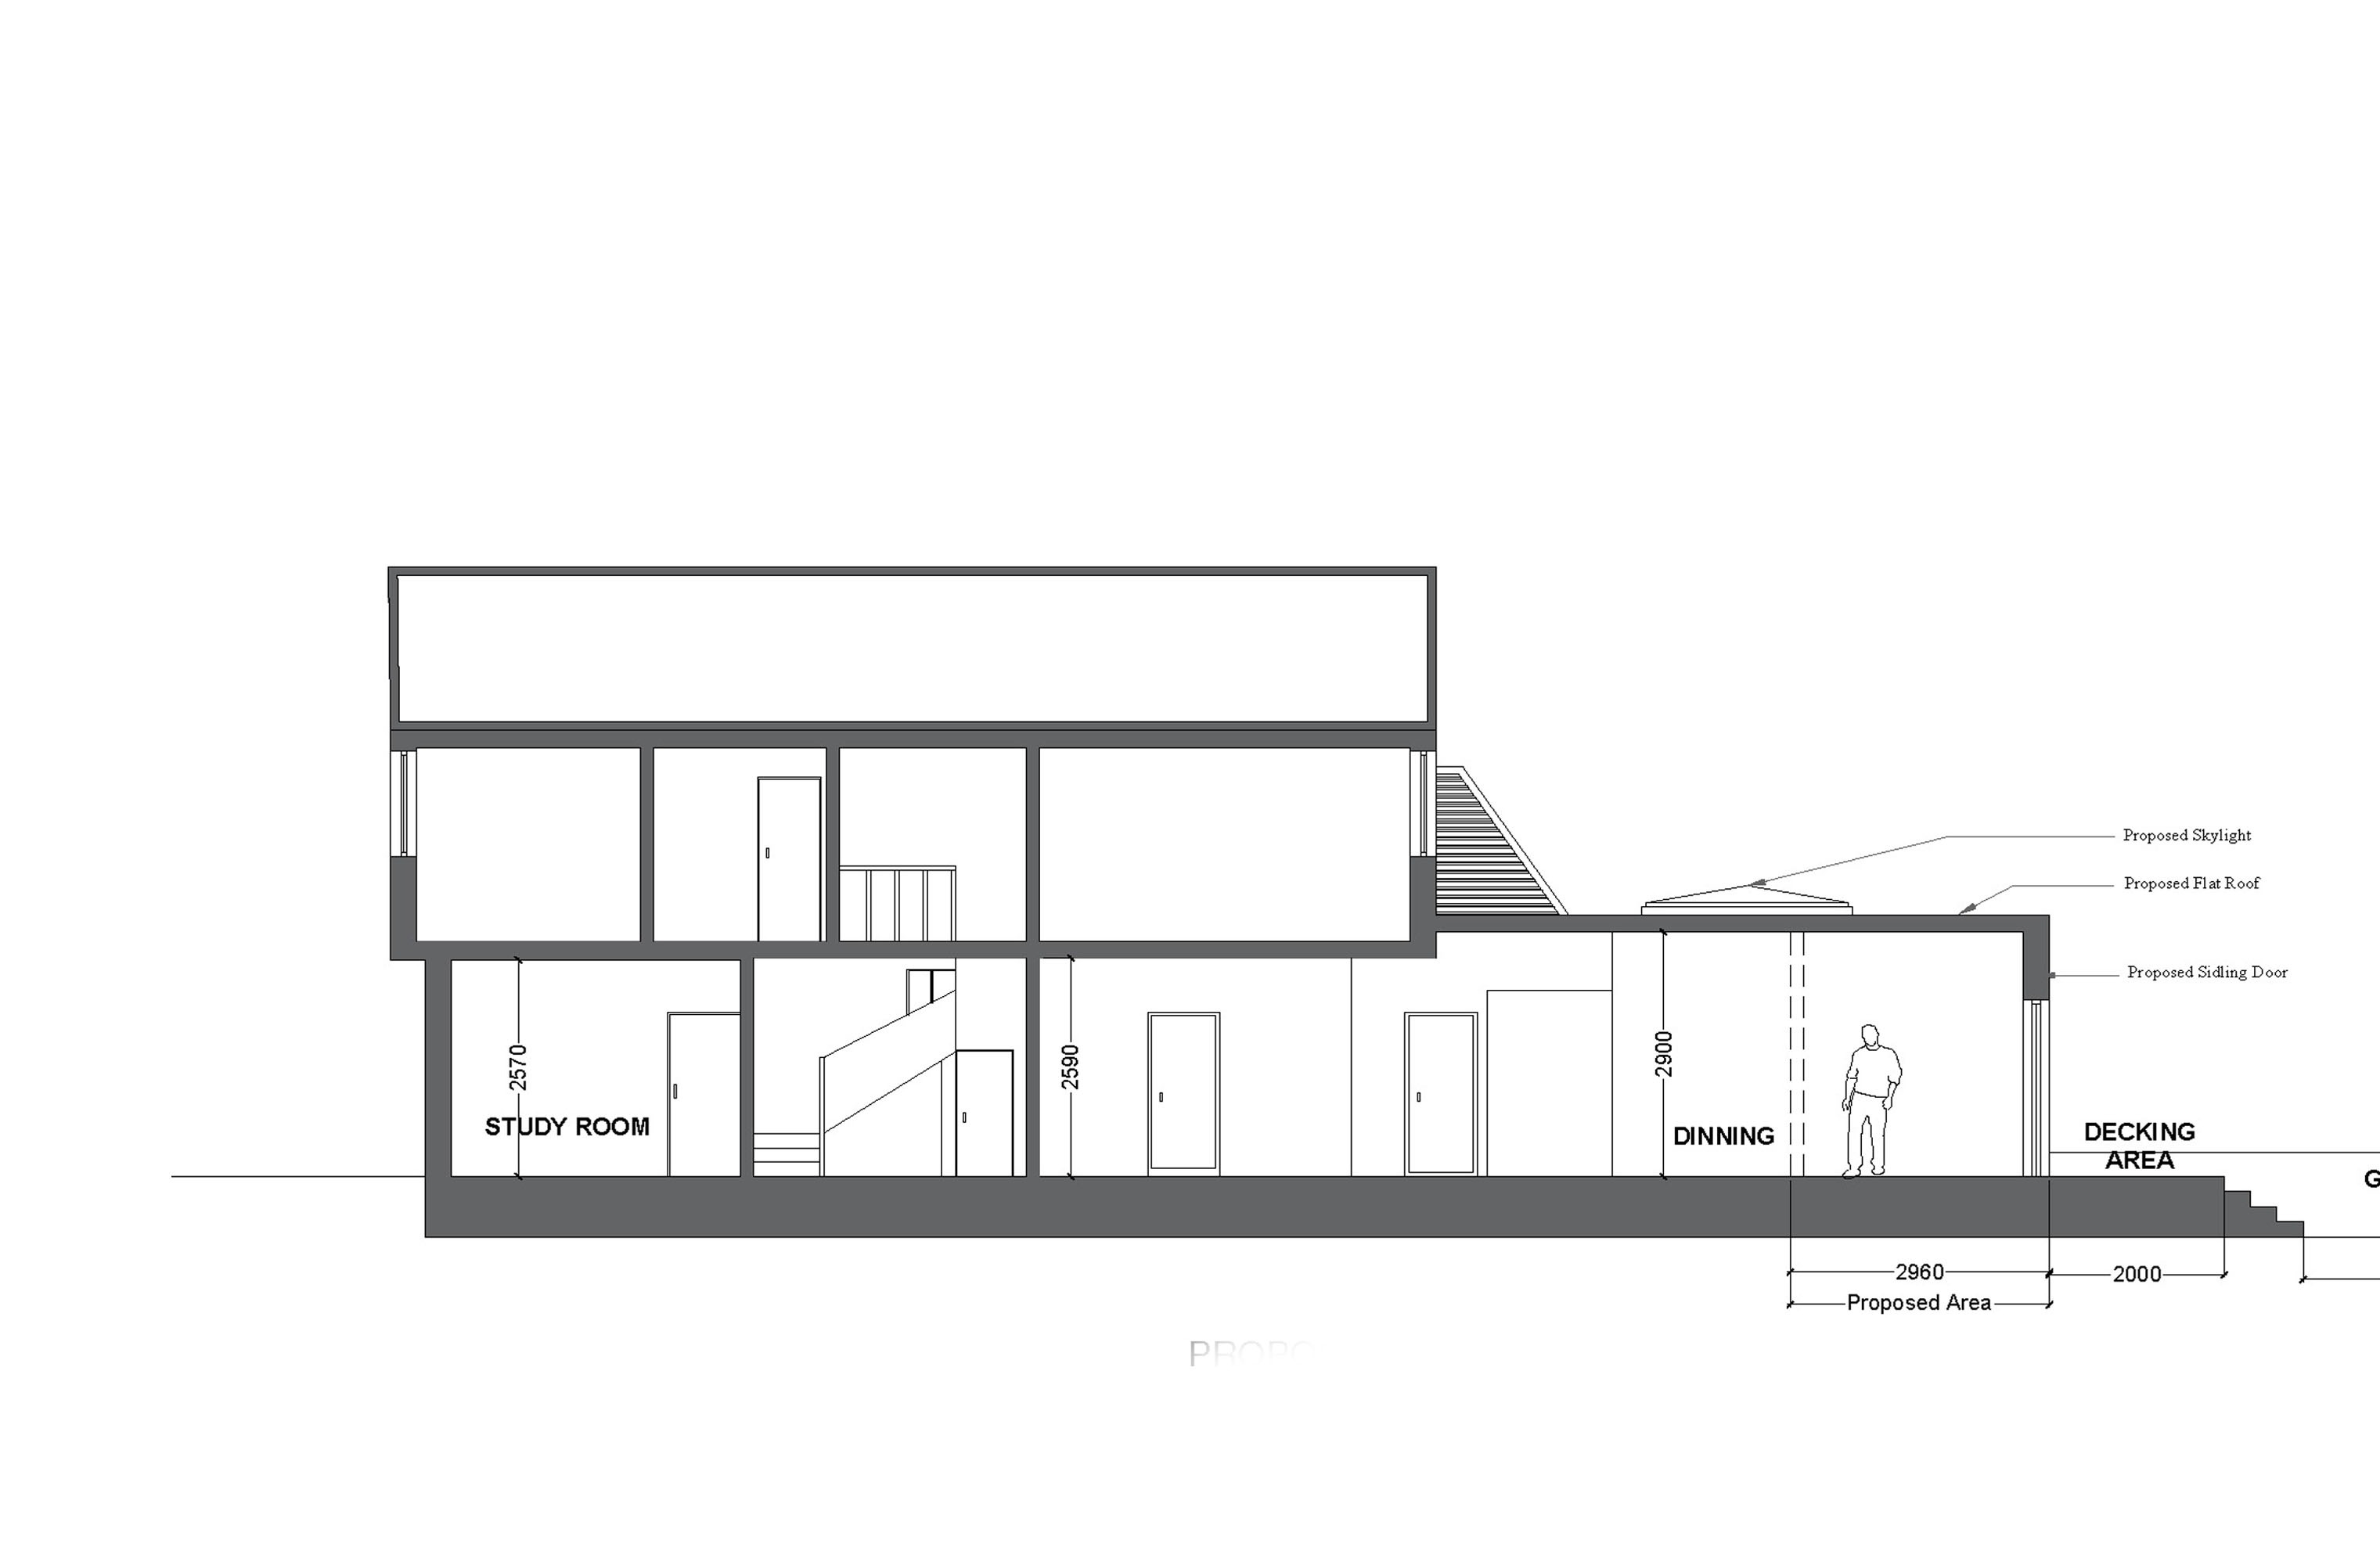 16 proposed side3 elevation